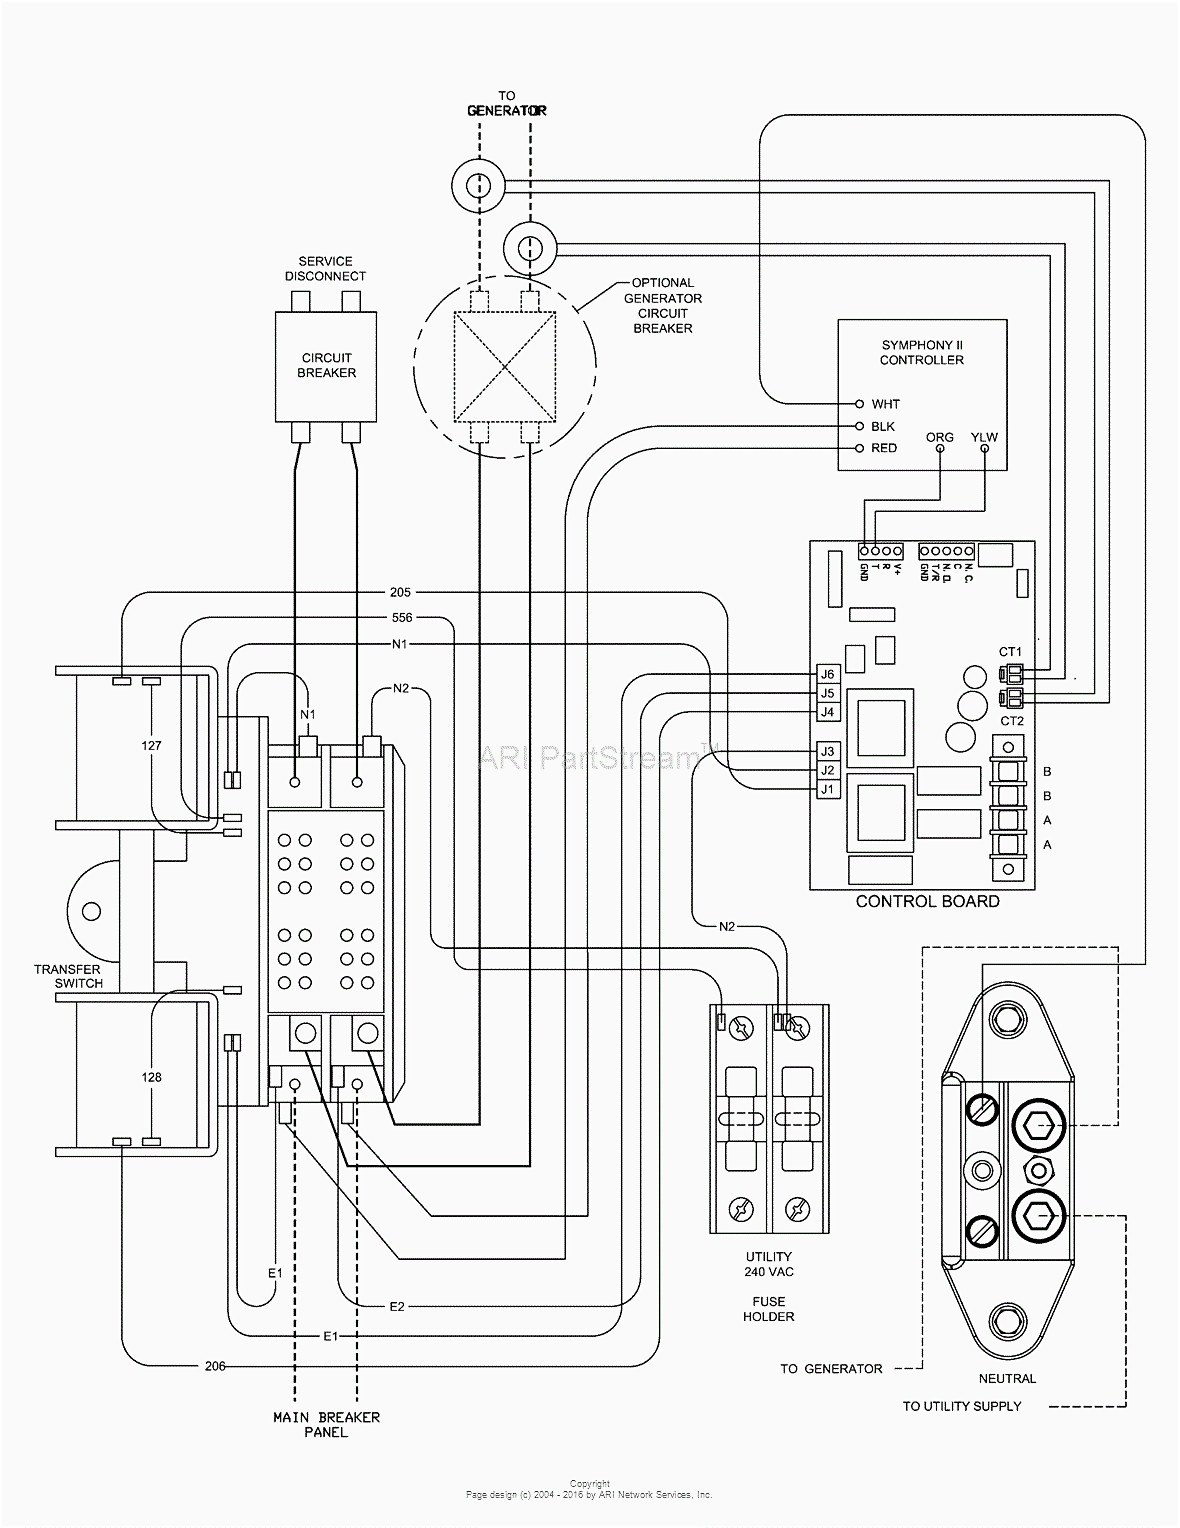 Diagram Generac 400 Amp Transfer Switch Wiring Diagram